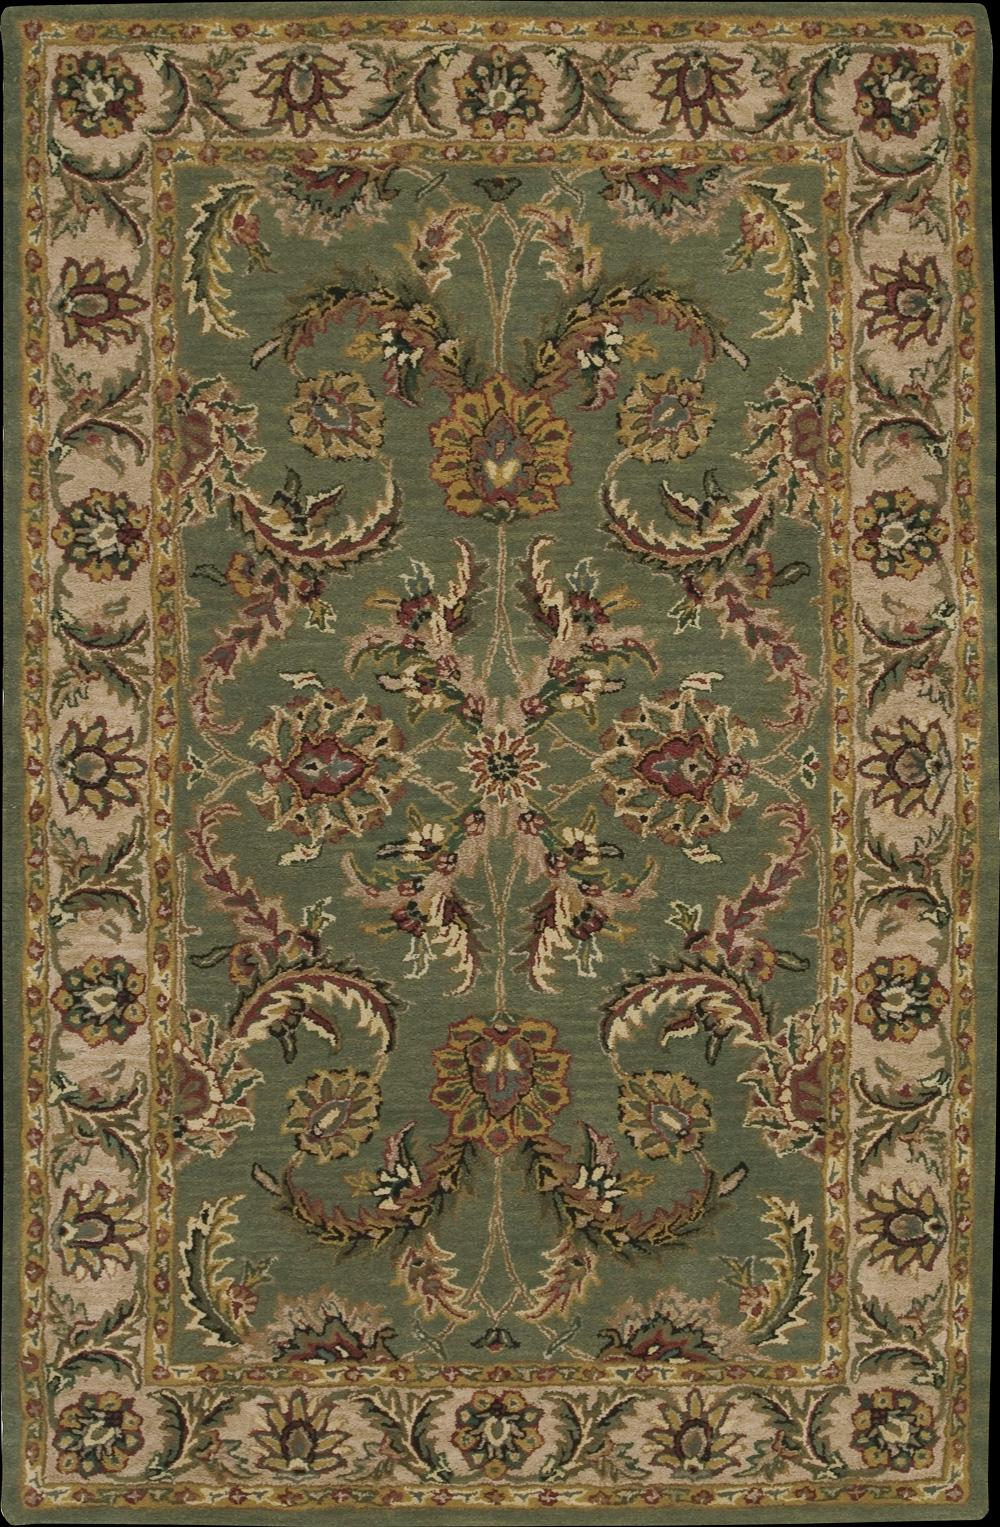 Nourison India House Area Rug 5' x 8' - Item Number: 30462